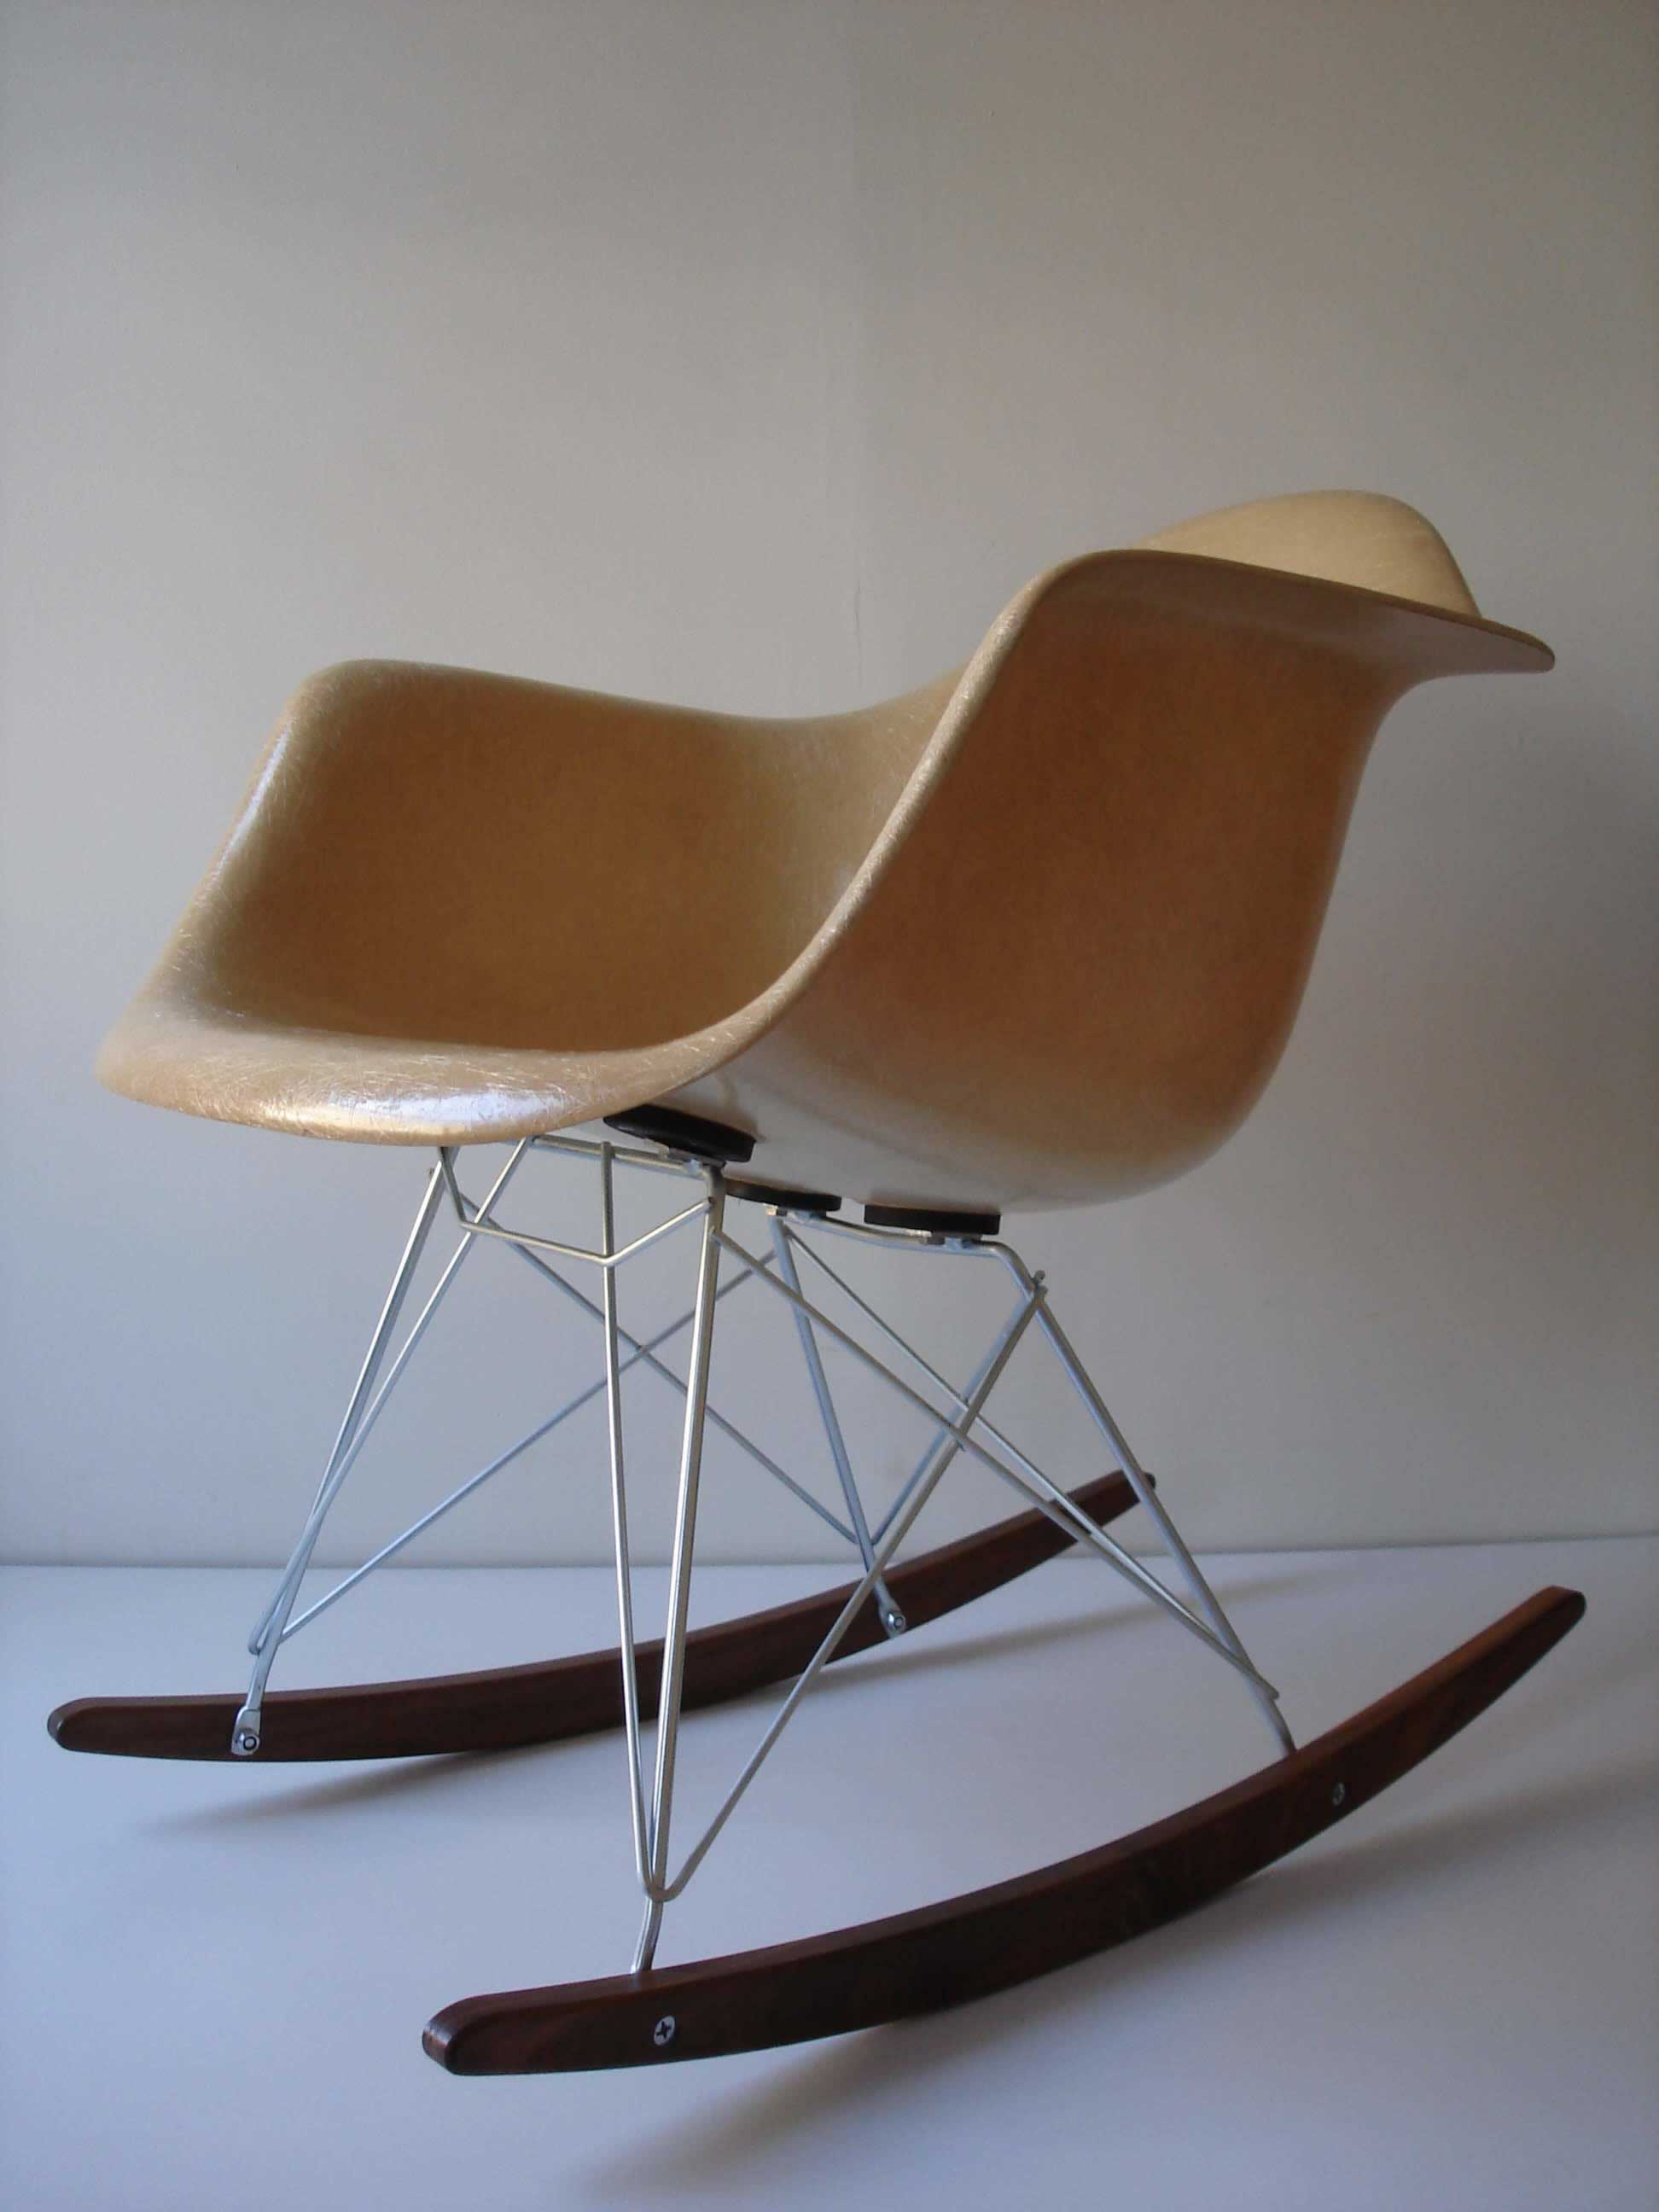 Eames Chair Sessel Design Sessel Replica Elegant Eames Lounge Chair Ottoman Full